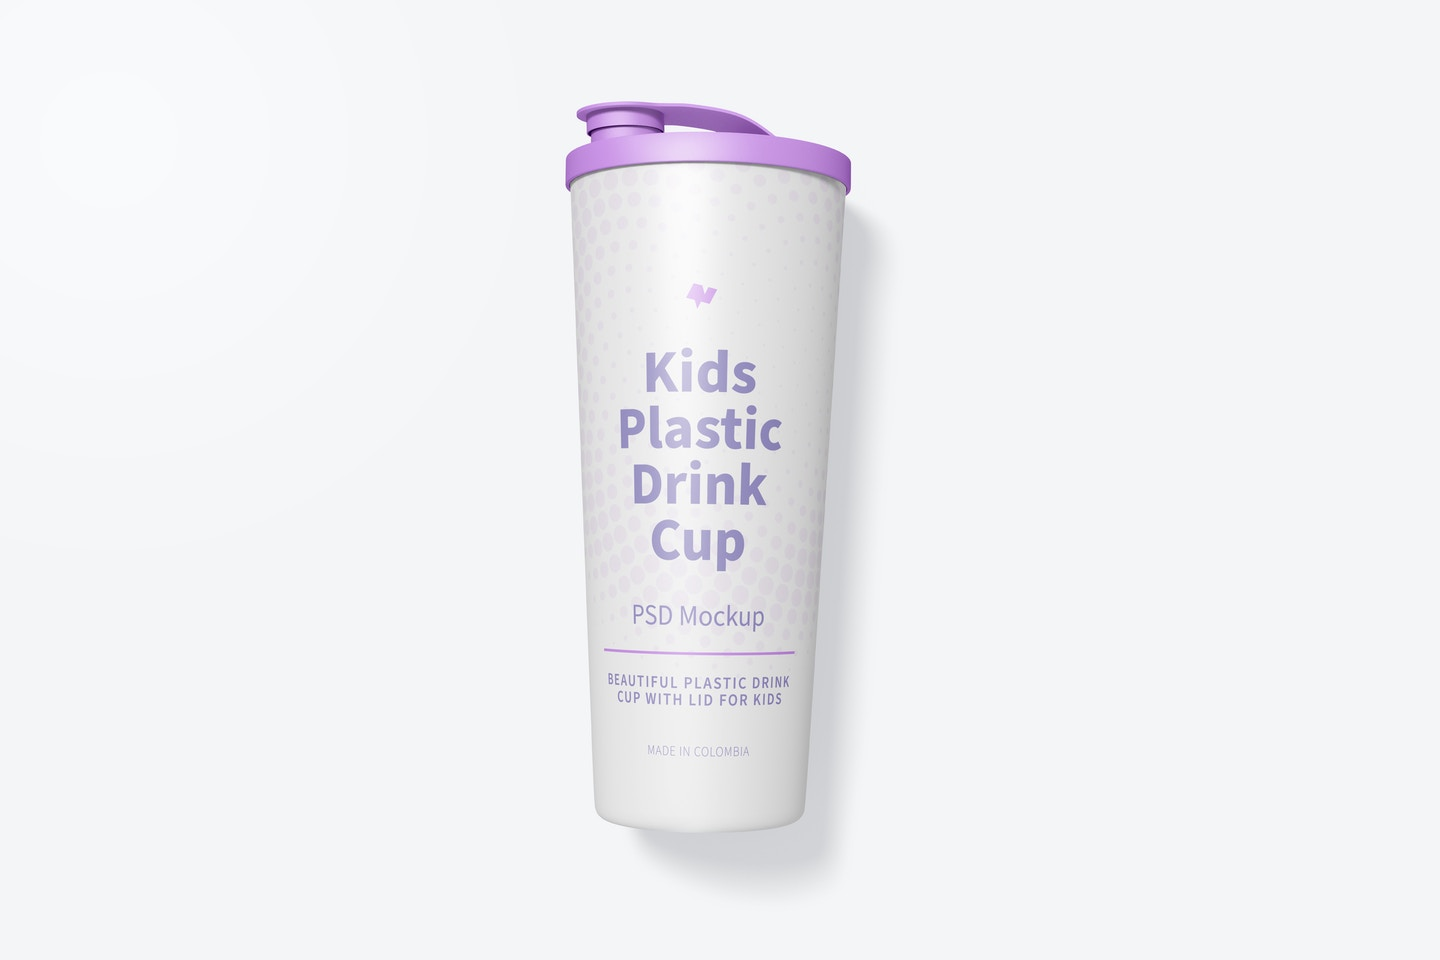 Kids Plastic Drink Cup With Lid Mockup, Top View